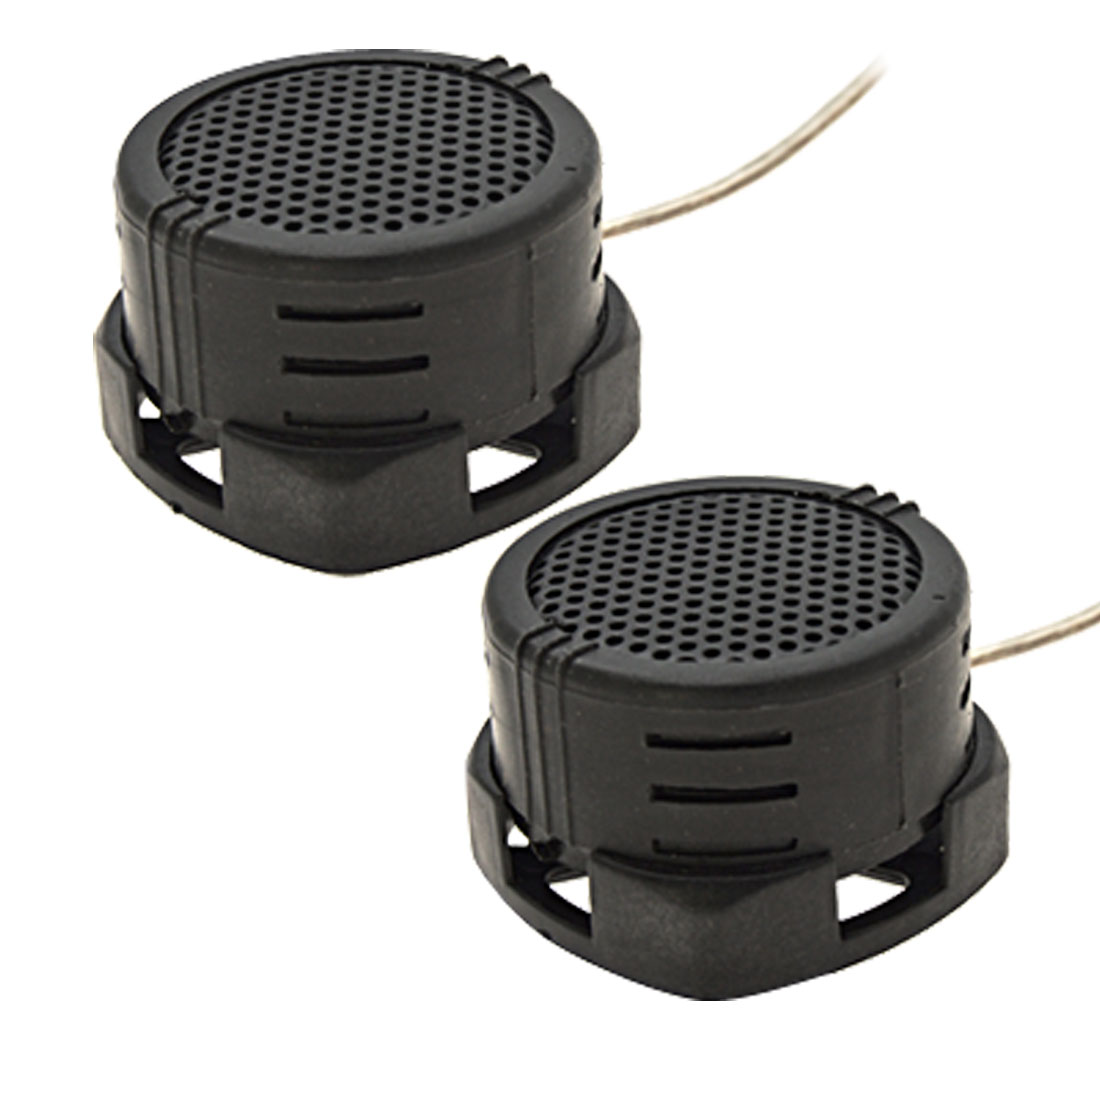 2x 40 Watt Auto Car Loud Dome Tweeters Speakers Black